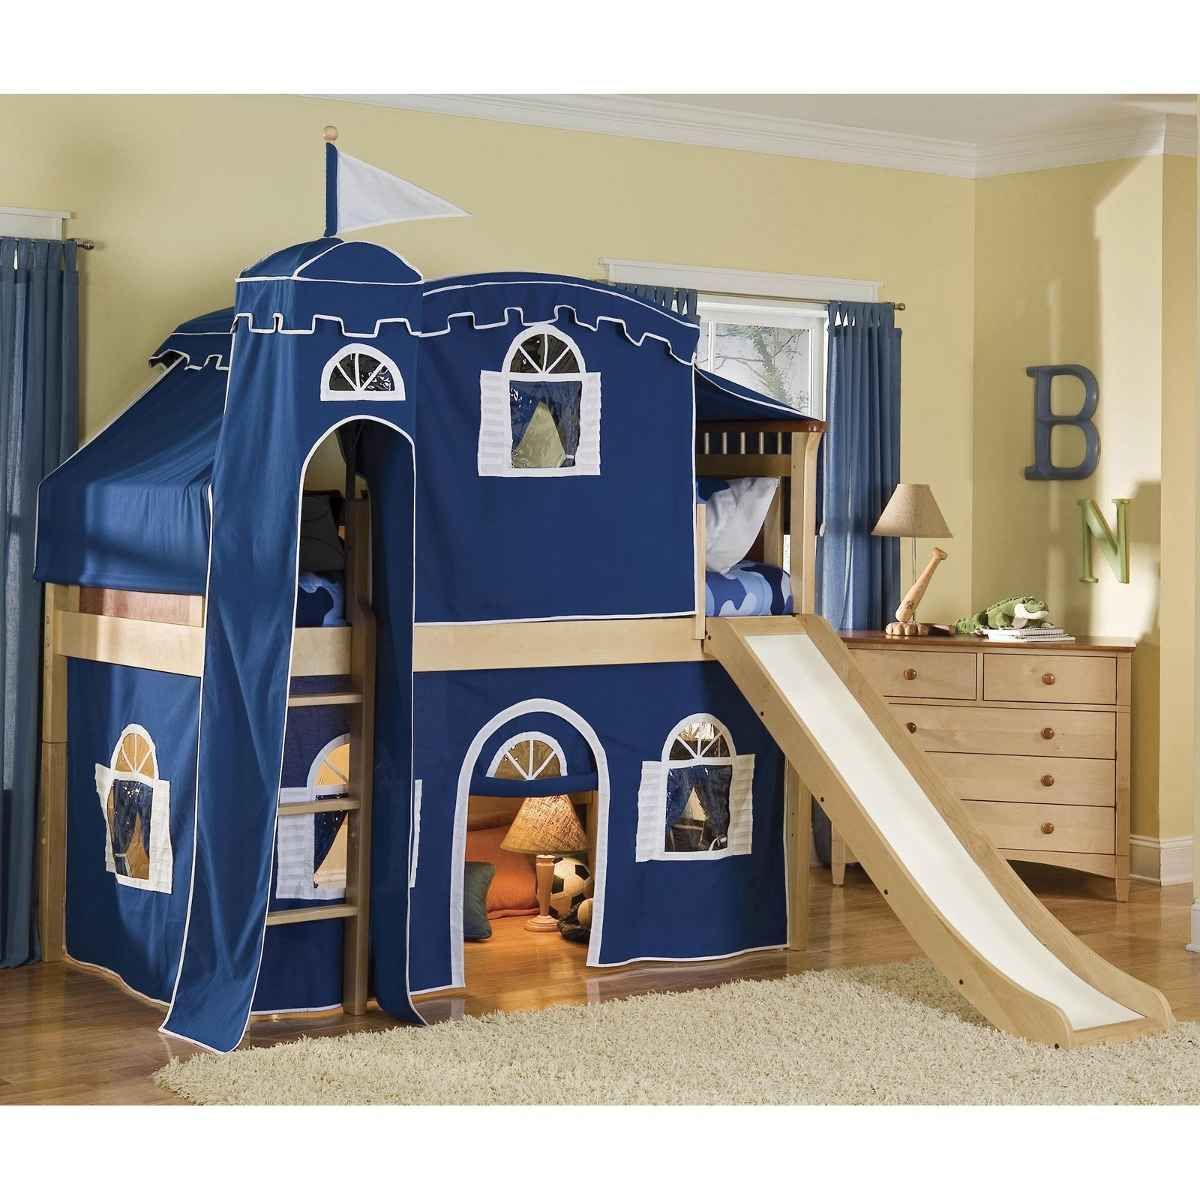 Bunk bed with slide for boys - Bunk Bed Tents For Boys Blue Tent Castle Bed For Children